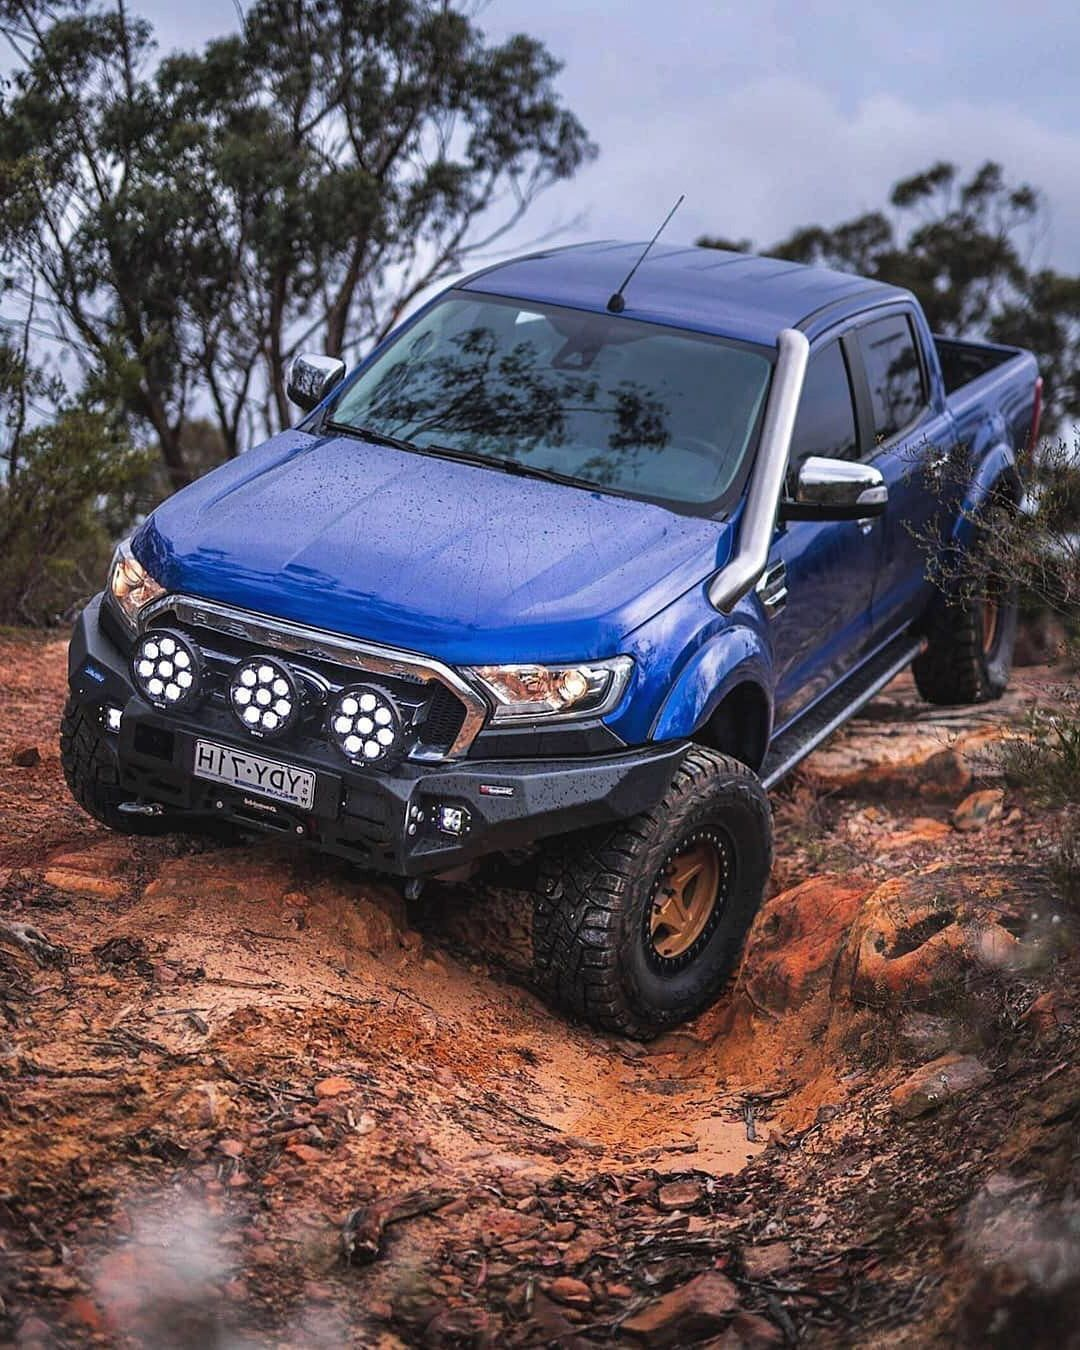 The Off Road Beast Ford Ranger Equipped With Rival Aluminum Bumper Our Bumpers Are Legal For Public Roads I Ford Ranger 4x4 Ford Ranger Ford Ranger Raptor